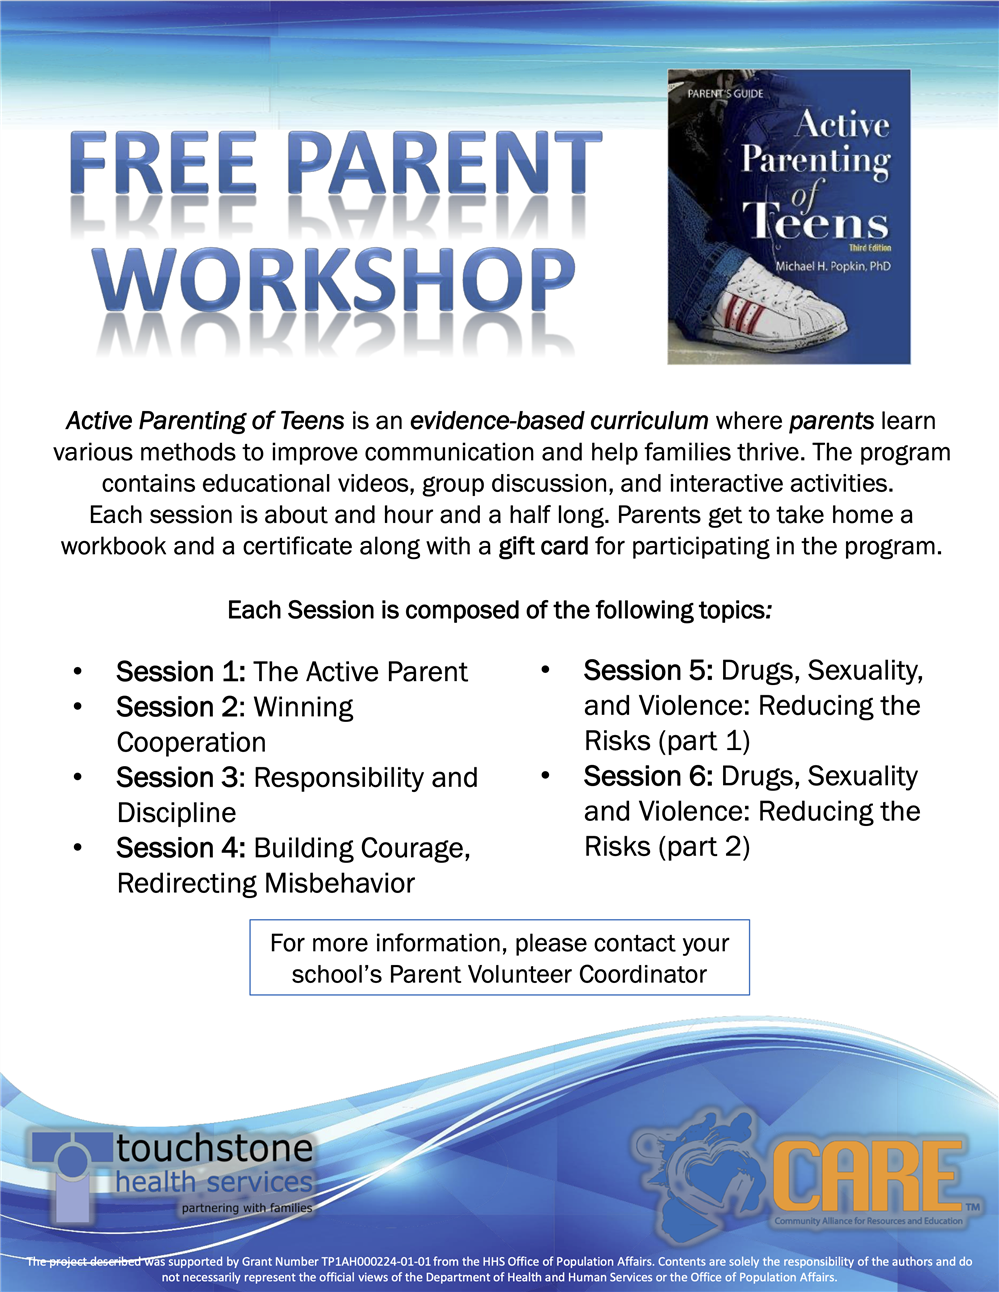 Active Parenting of Teens Parent Workshop Flyer